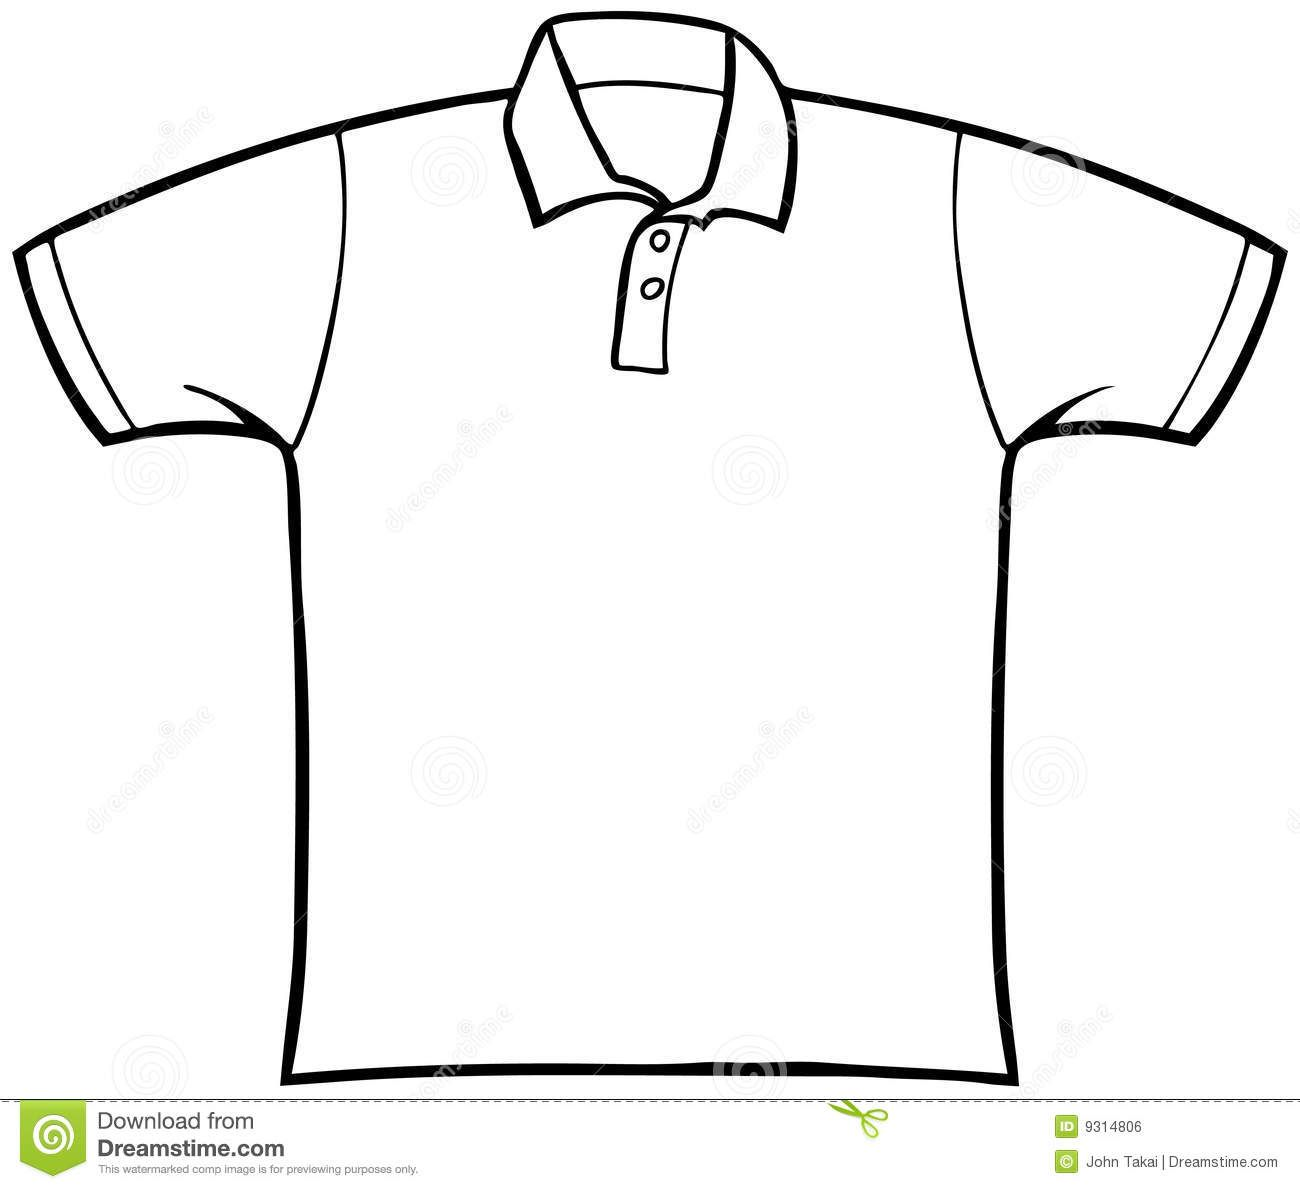 Collared T Shirt Royalty Free Stock Image Image 9314806 Image Clothes Free Clothes Black And White